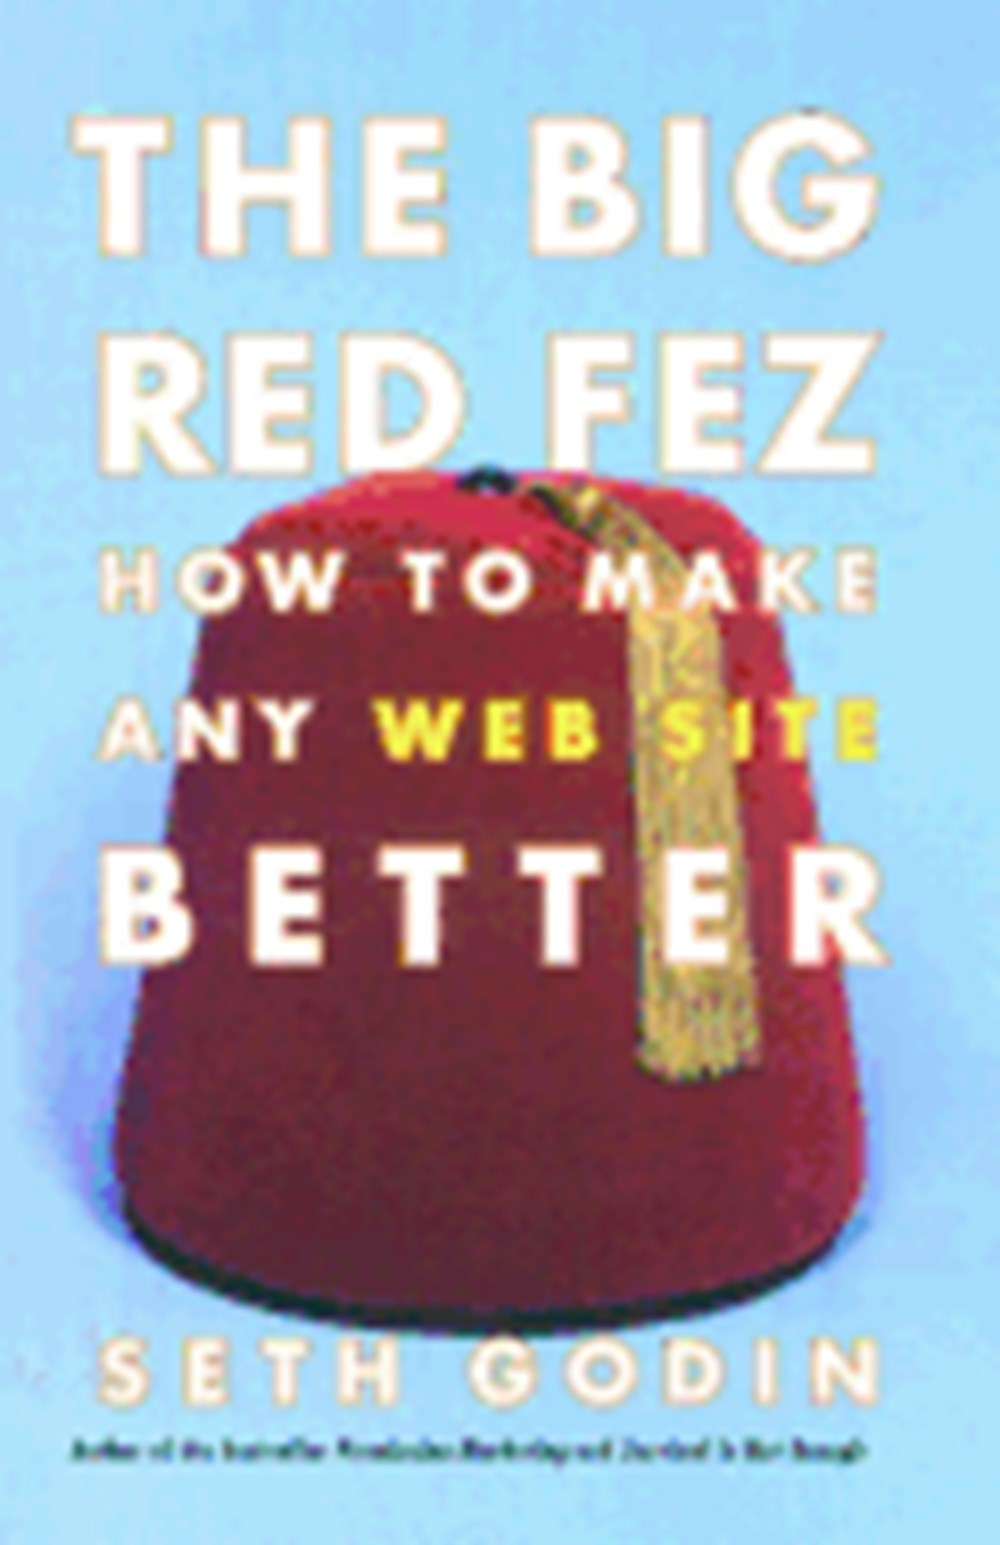 Big Red Fez How to Make Any Web Site Better